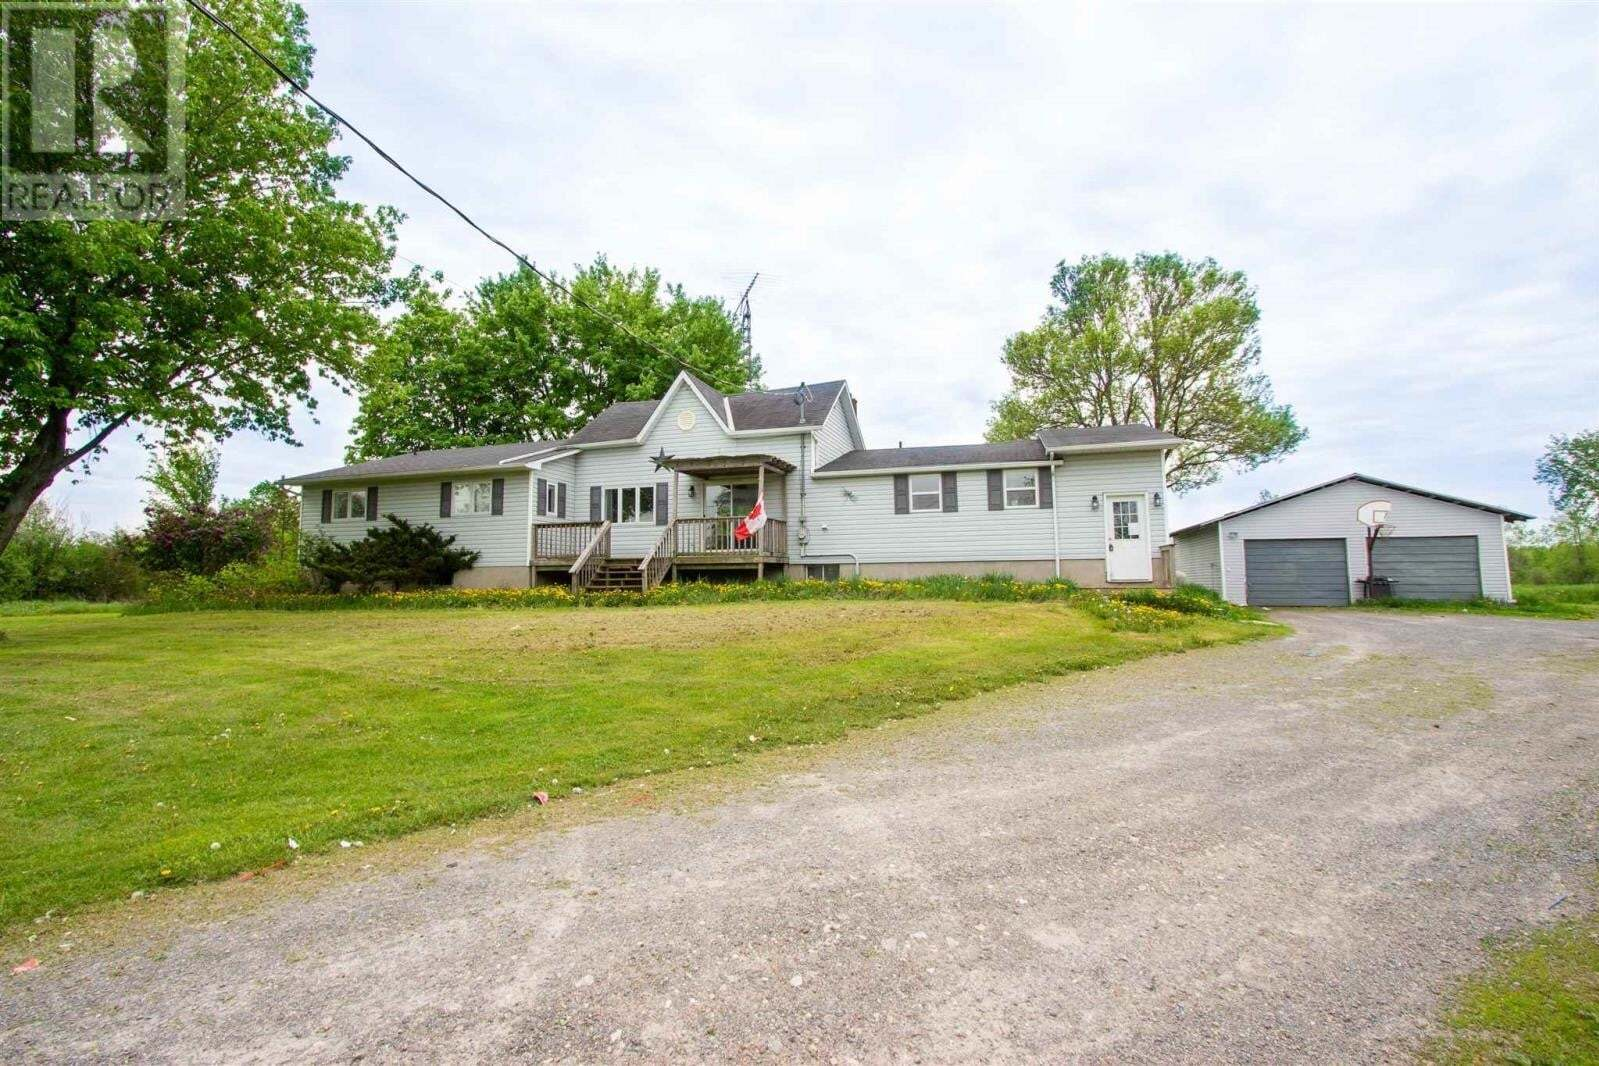 Residential property for sale at 4990 Bradford Rd South Frontenac Ontario - MLS: K20002716